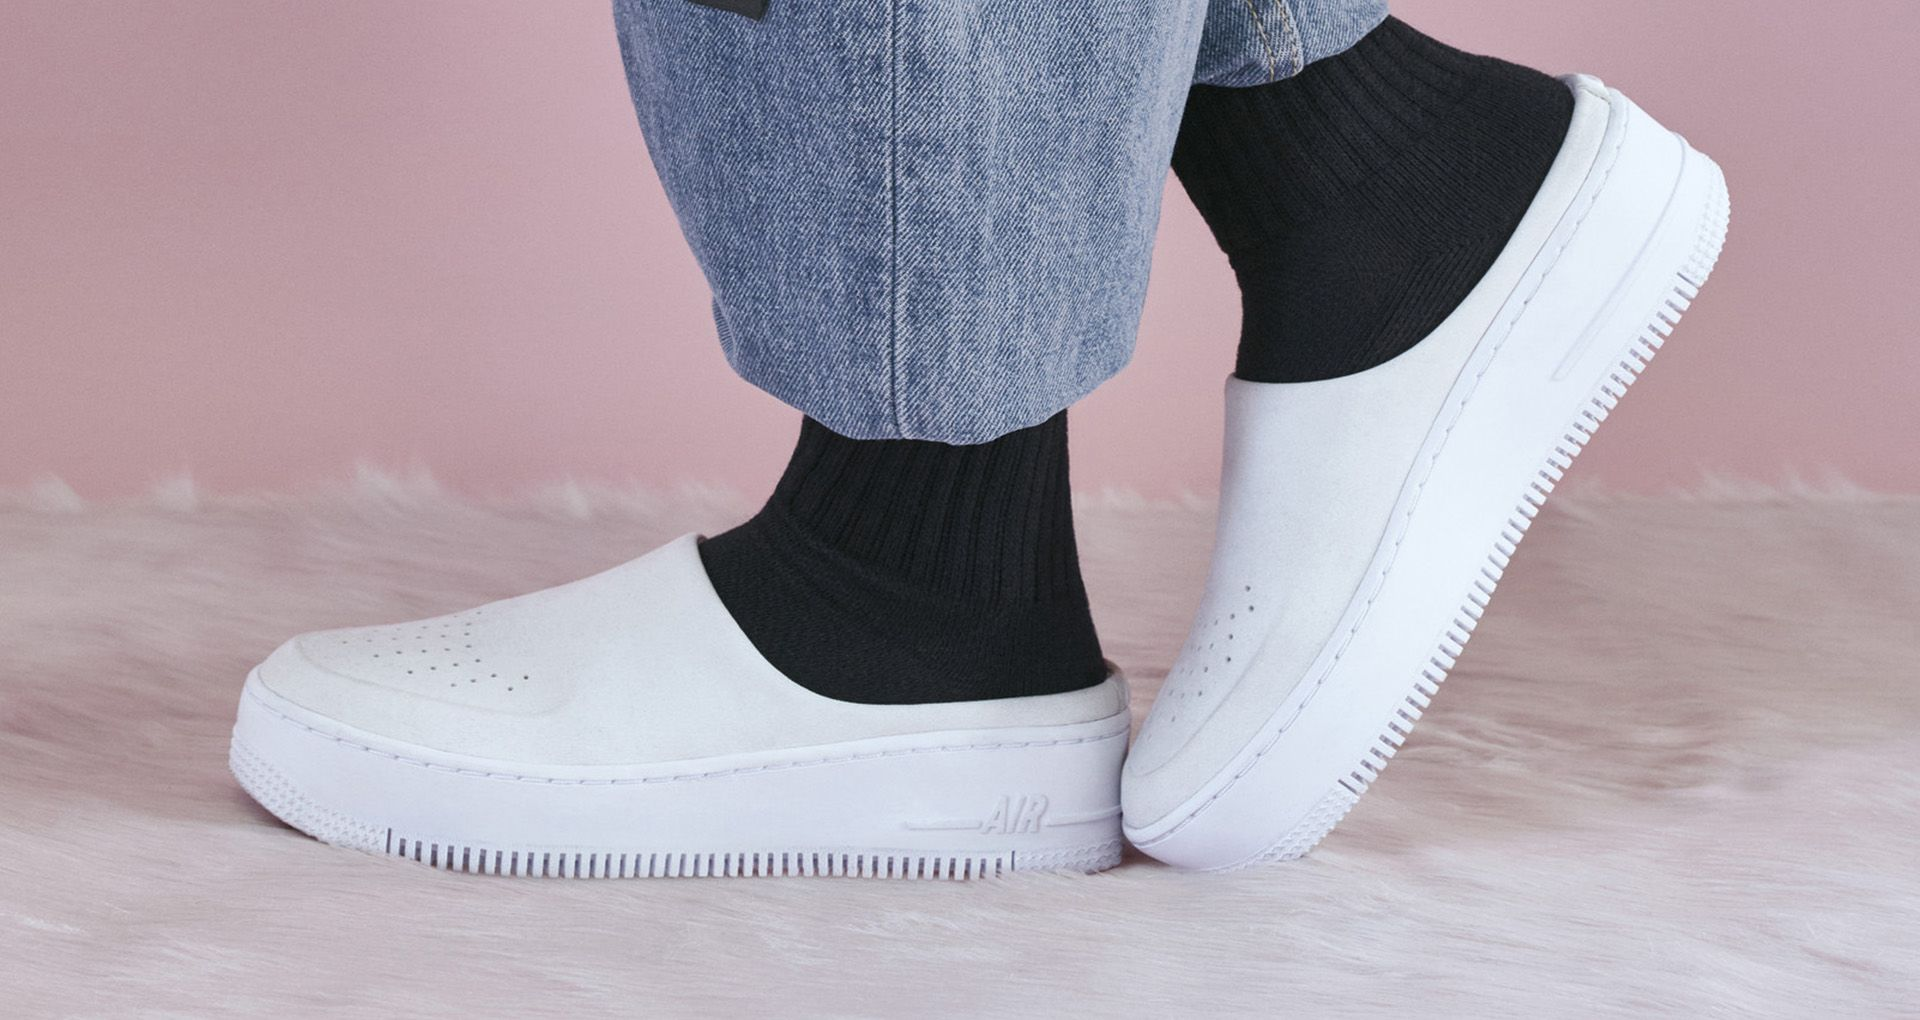 separation shoes 8ef56 ee4bc Women's Air Force 1 Lover XX '1 Reimagined' Release Date ...